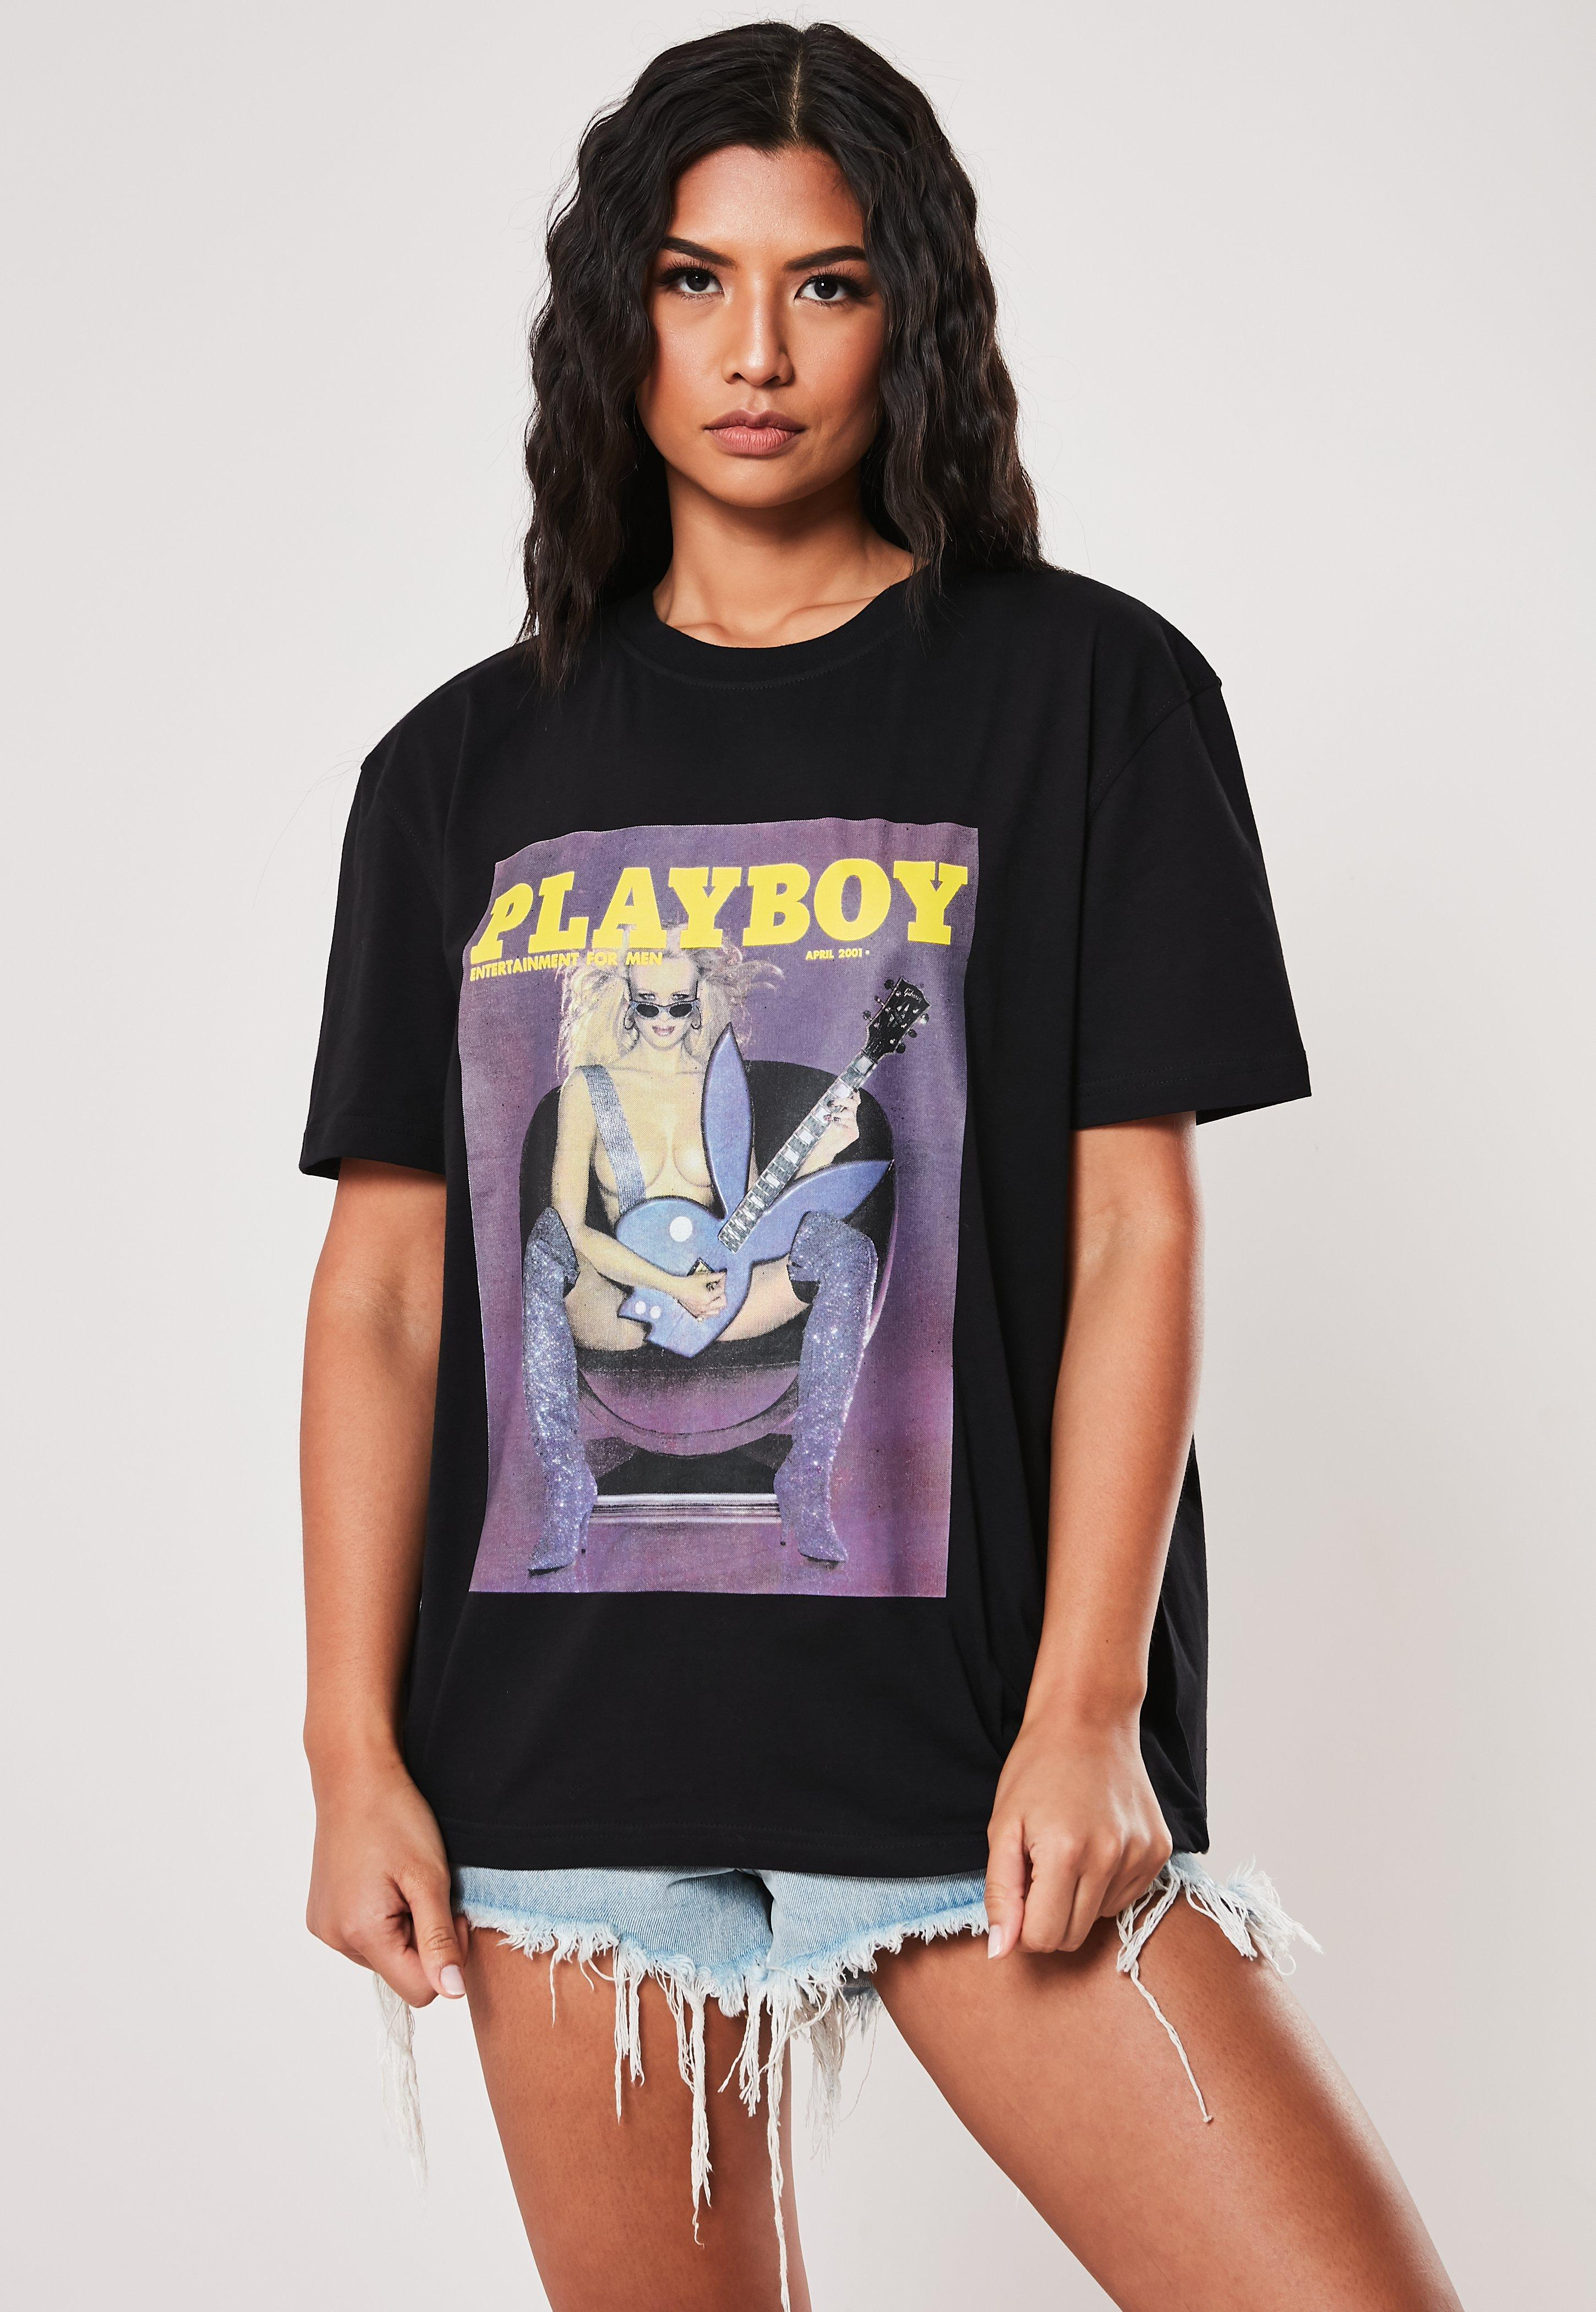 b76bf4eba Playboy Clothing | Playboy T-Shirts, Necklaces & Tracksuits – Missguided